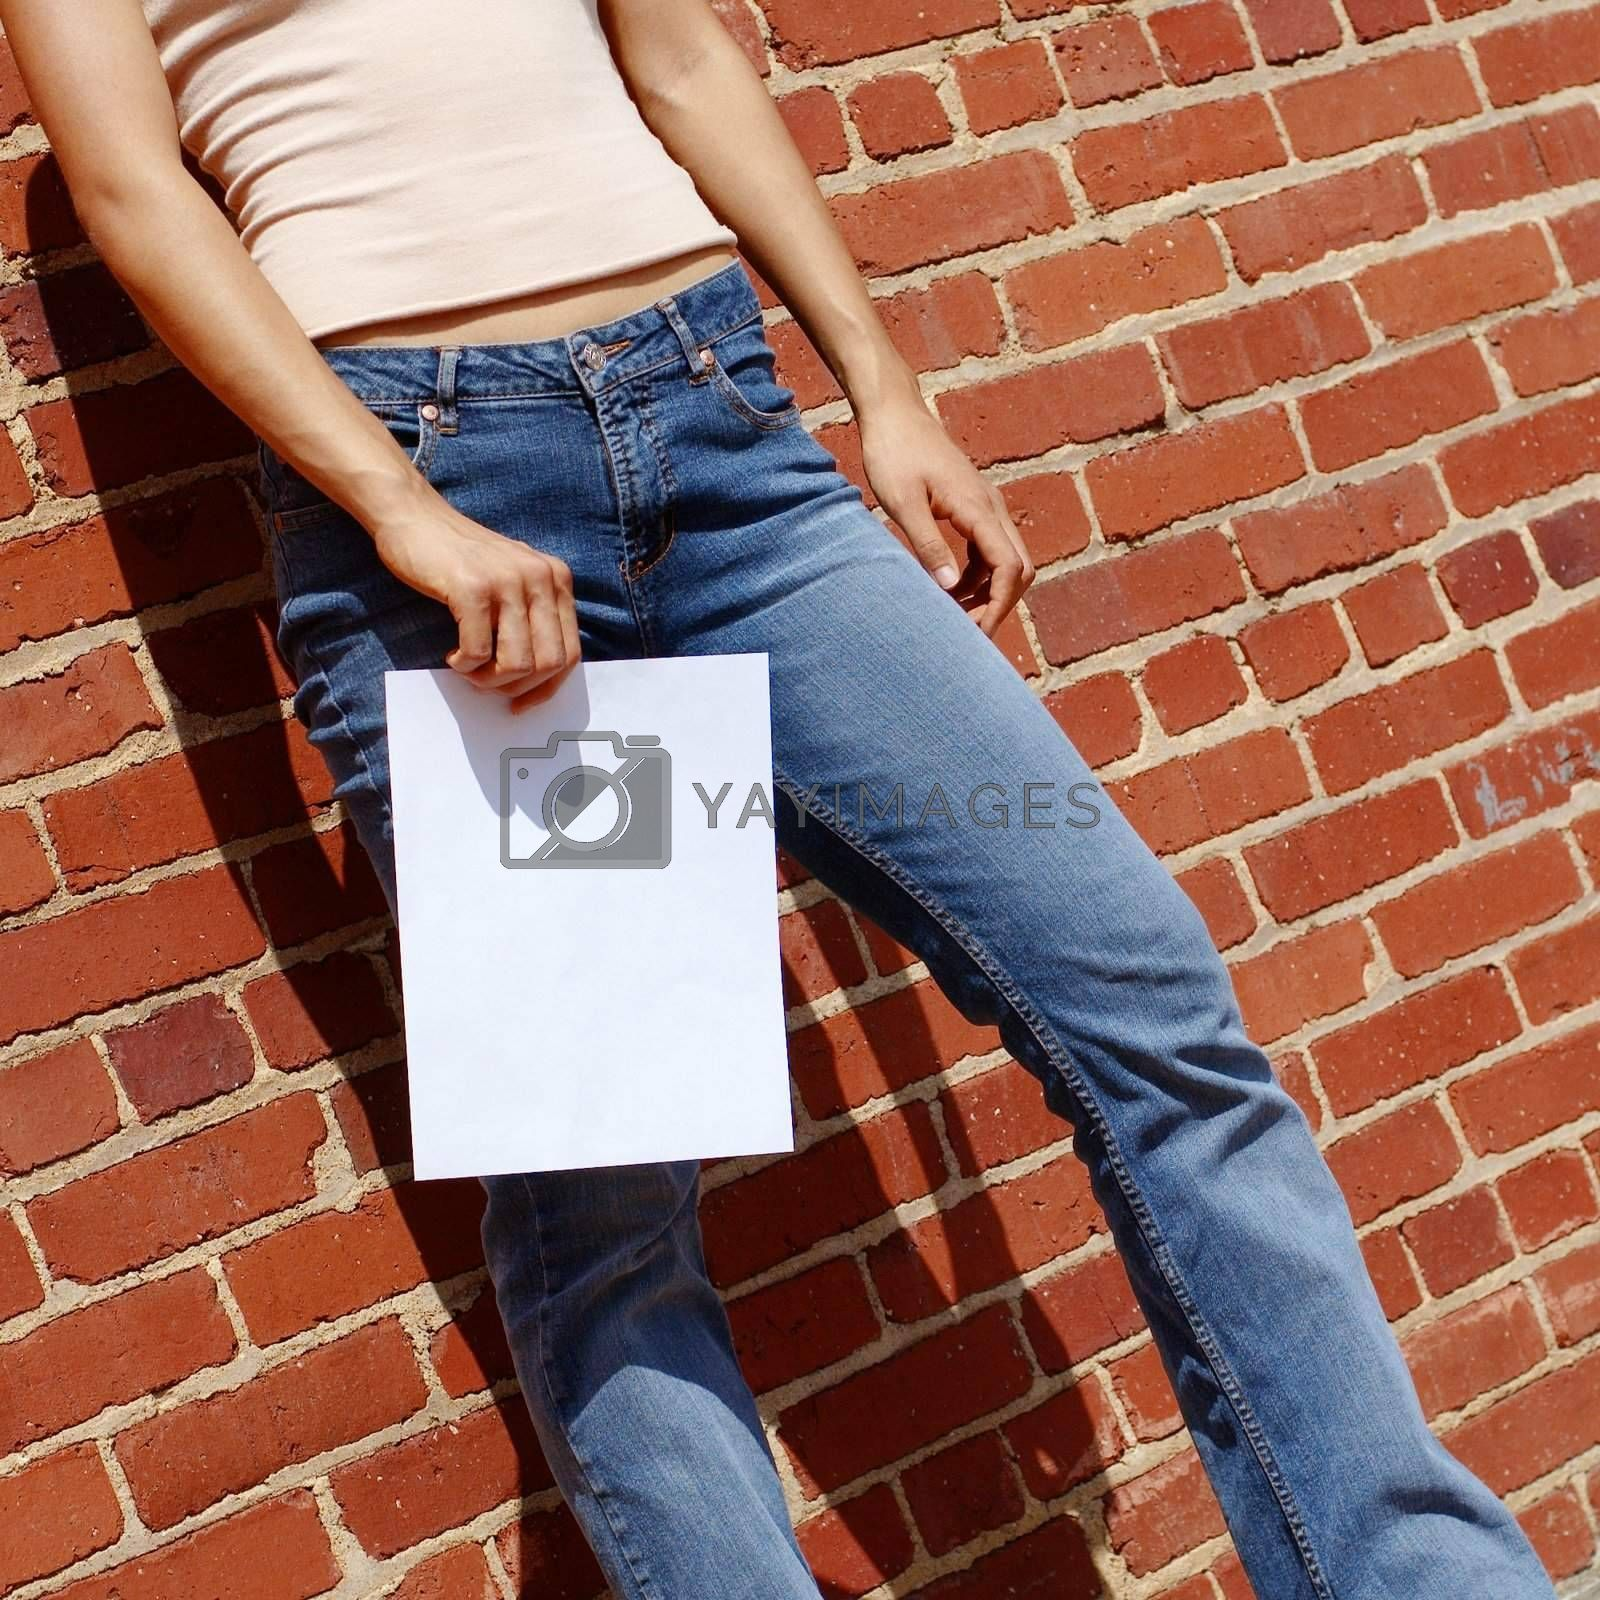 Fashionable girl against red brick wall with blank paper.